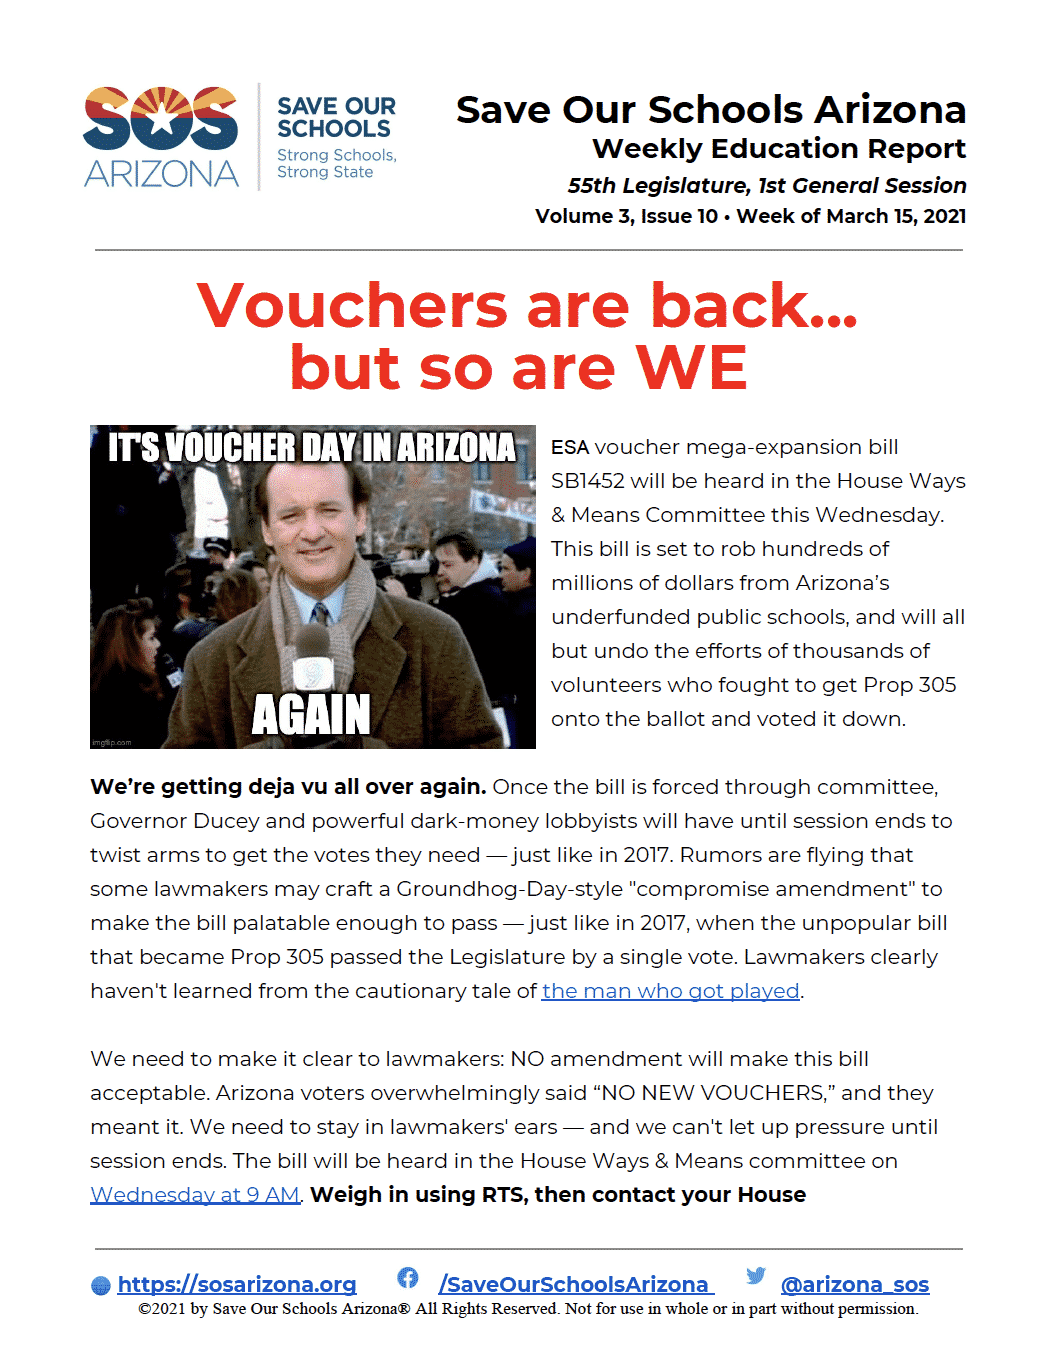 3/15/21 Vouchers are back... but so are WE